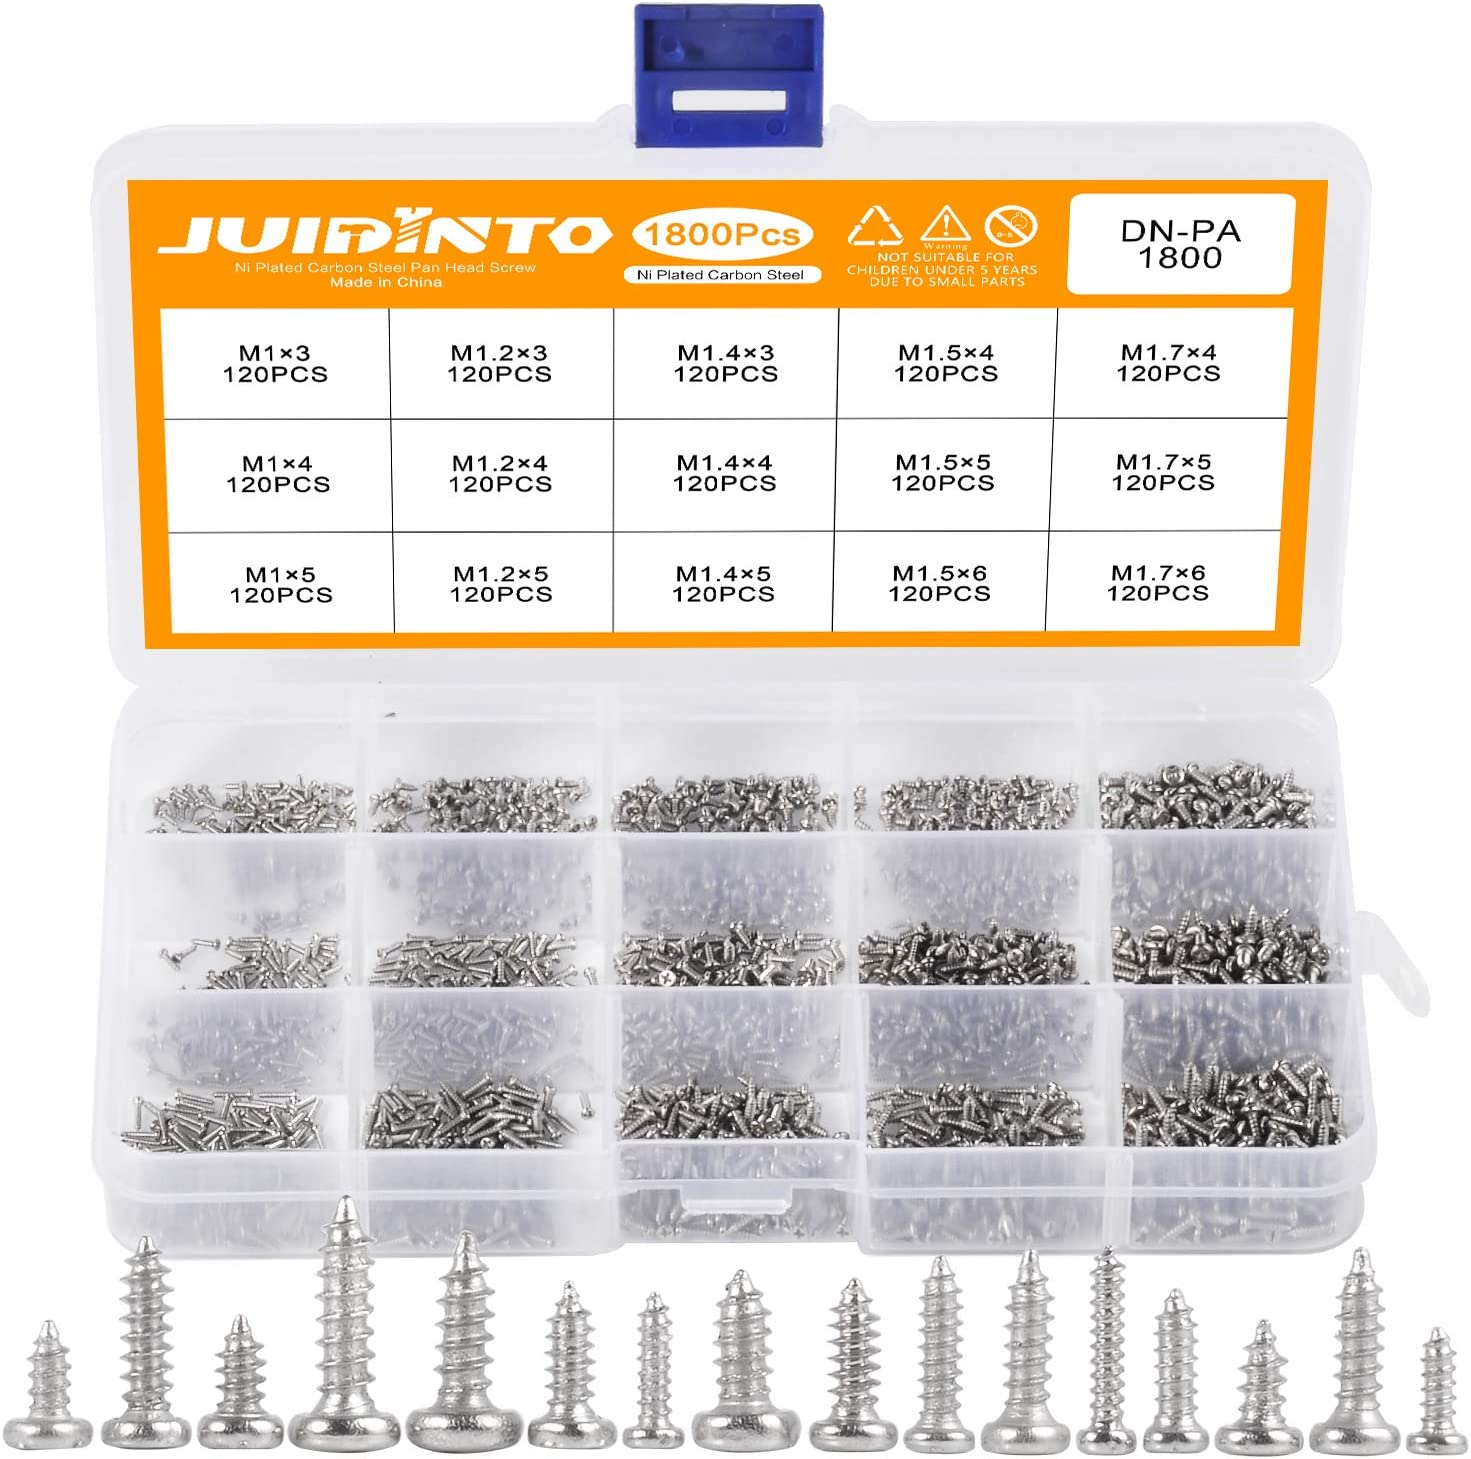 JUIDINTO PA Phillips Micro Laptop Tapping Screws Set M1 M1.2 M1.4 M1.5 M1.7 Micro Mini Wood Screw Set 1800pcs